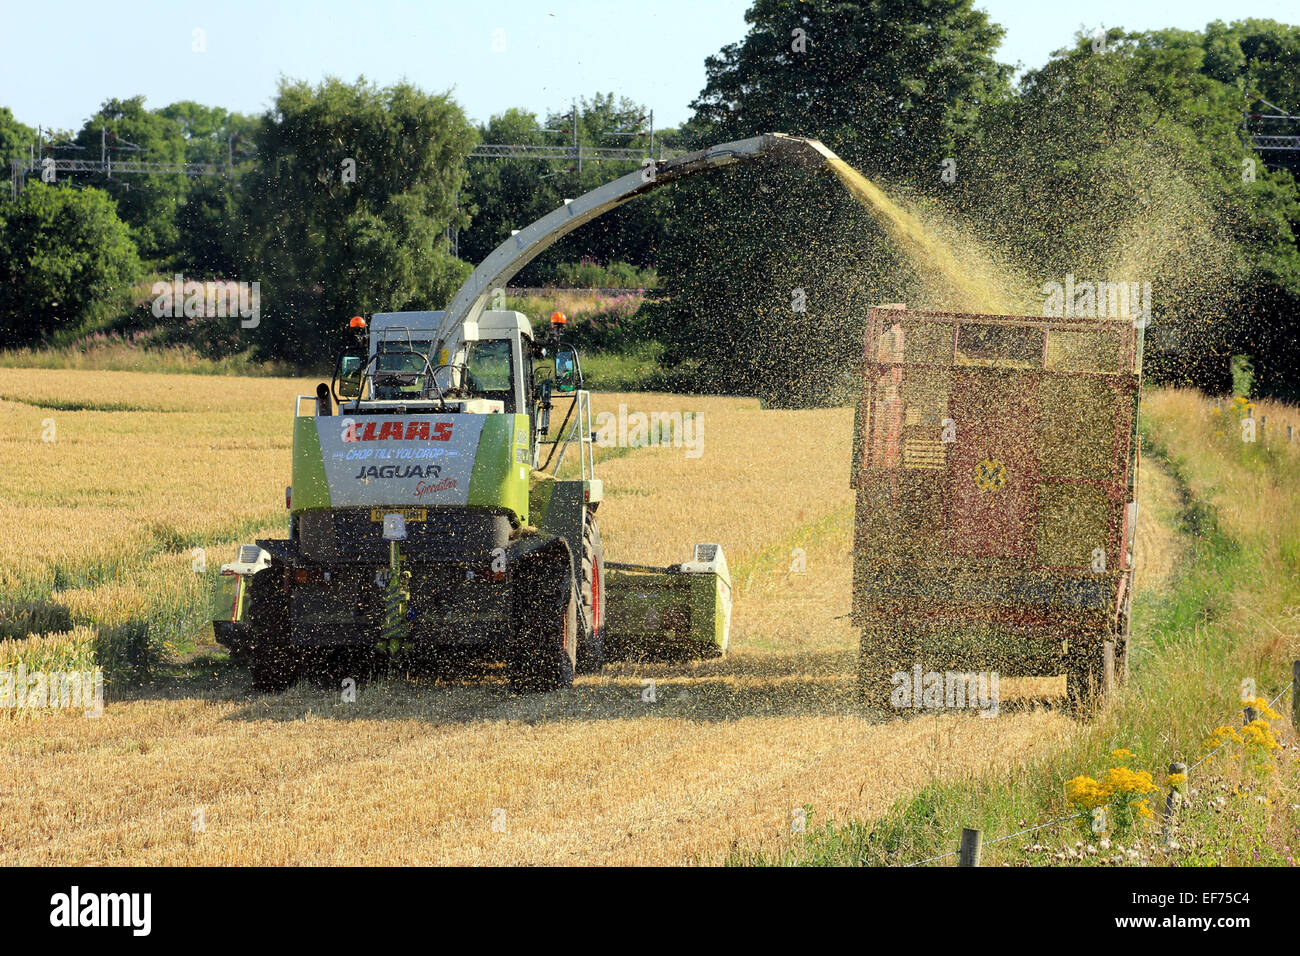 Harvesting of a wheat crop alongside the Middlewich branch of the Shropshire Union canal on August 1st 2013. - Stock Image